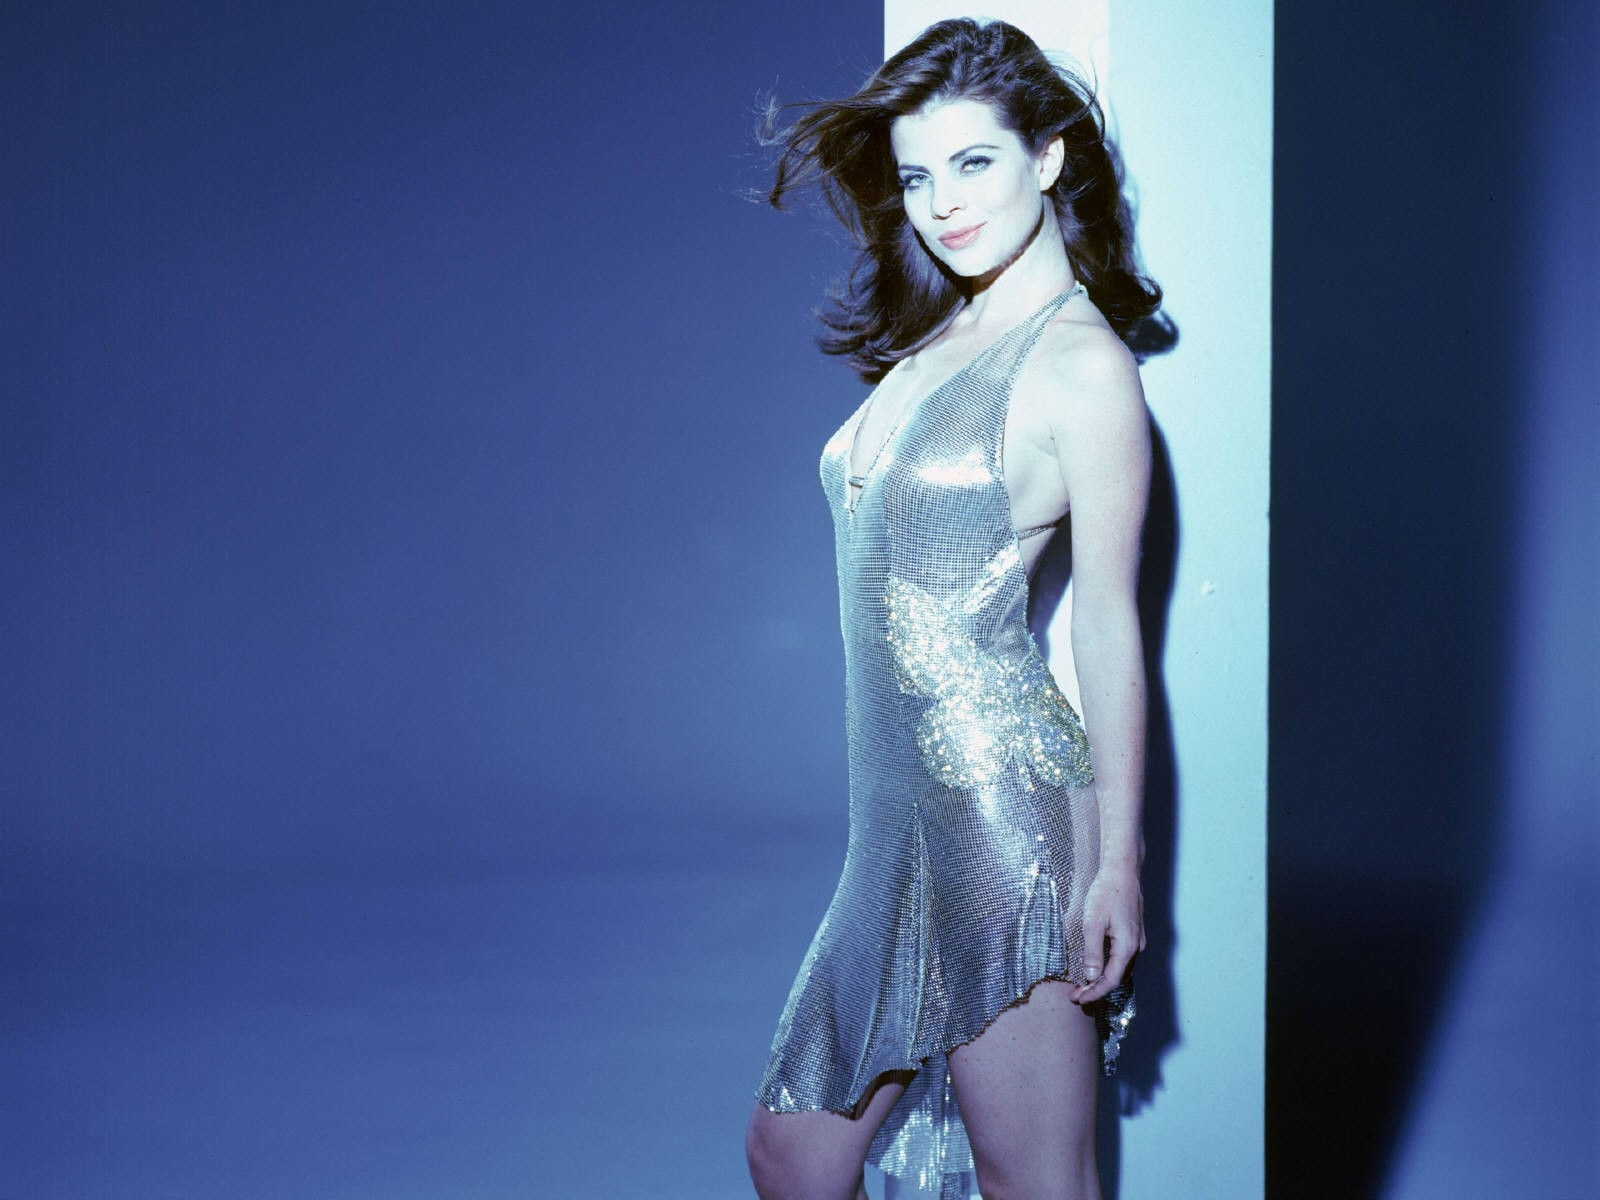 Wallpaper di Yasmine Bleeth - 23